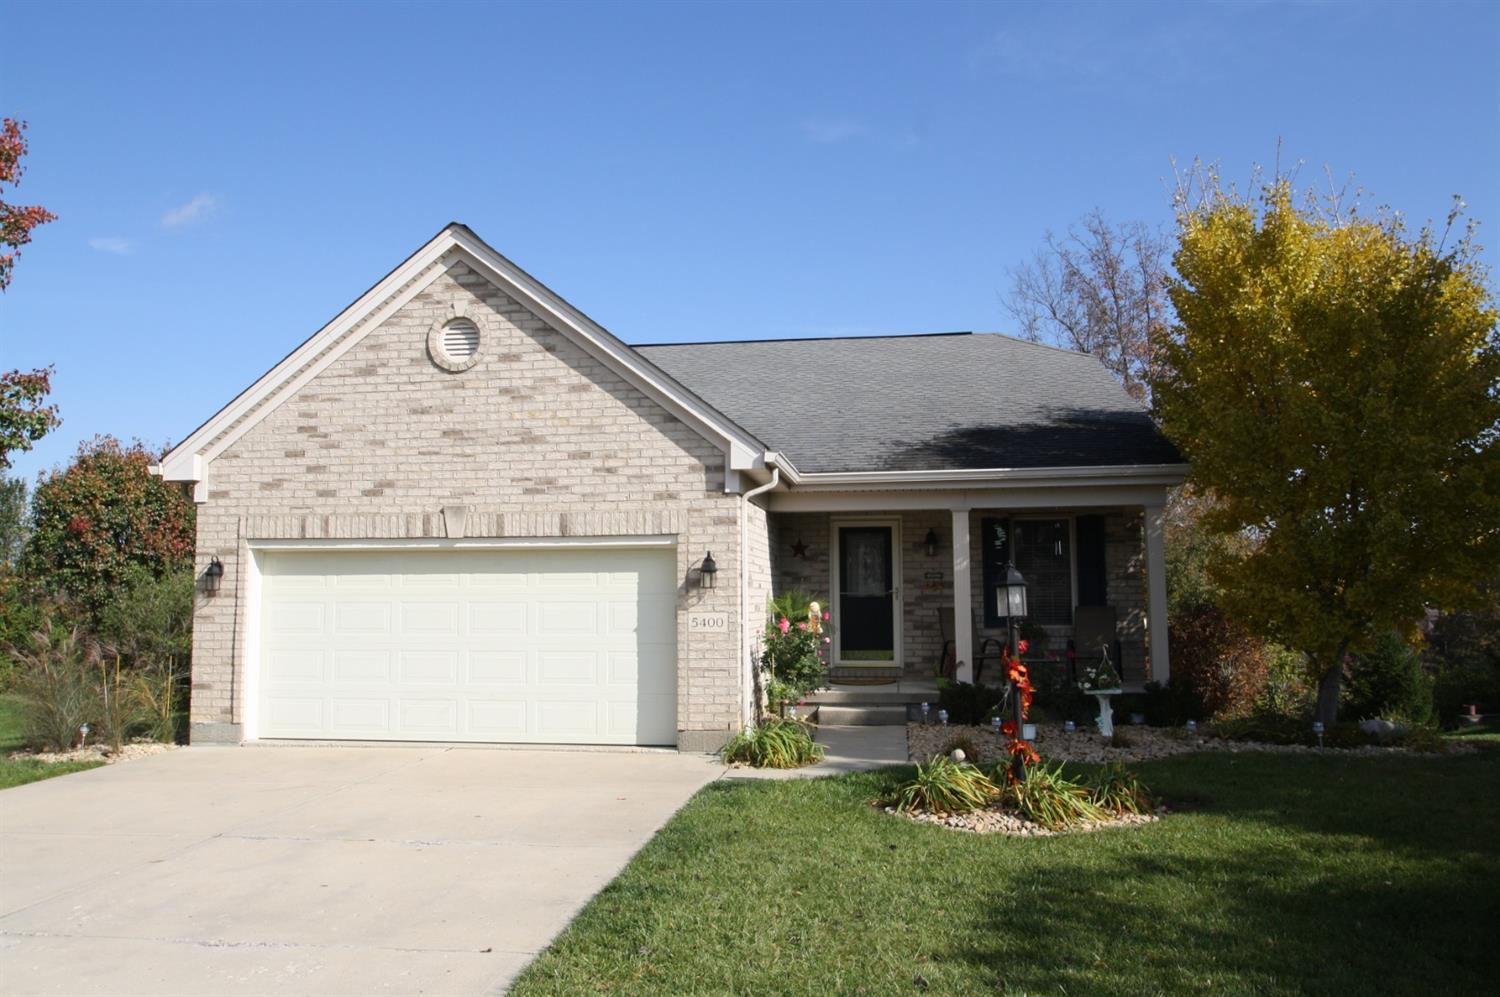 5400 Lakefront Dr Green Twp. - Hamilton Co., OH